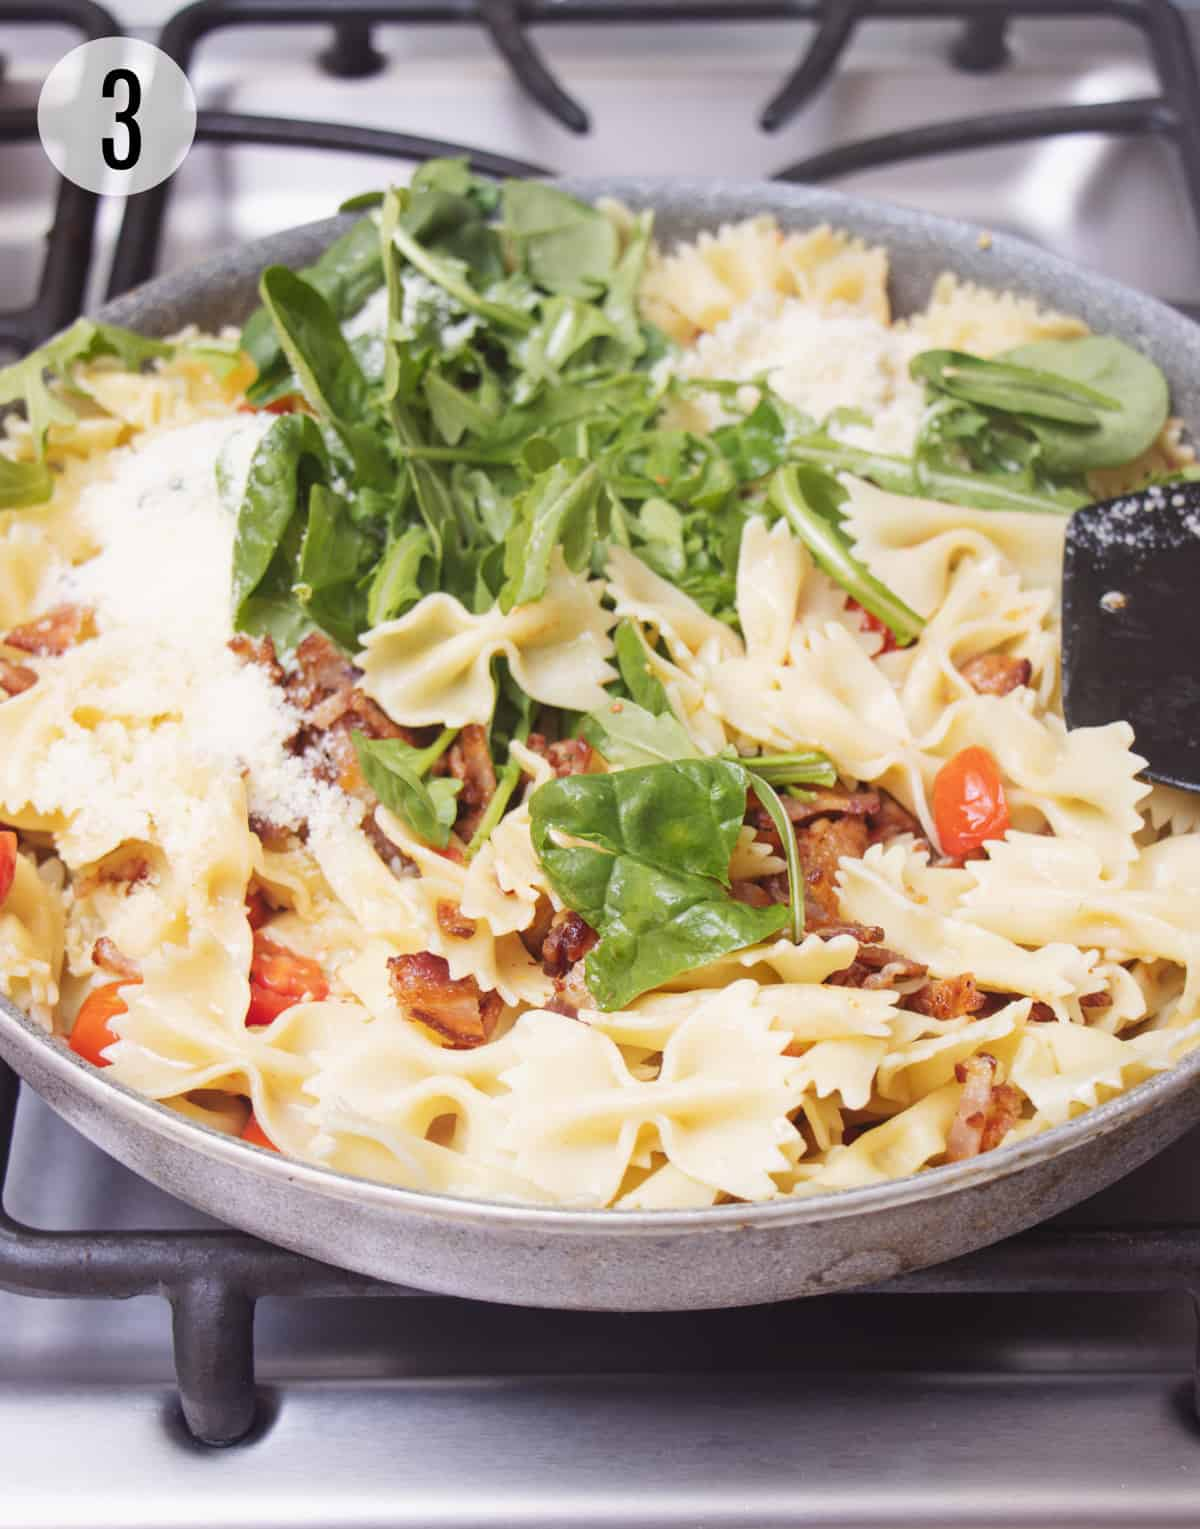 Skillet with baby spinach leaves, bow-tie pasta, chopped bacon and tomatoes.